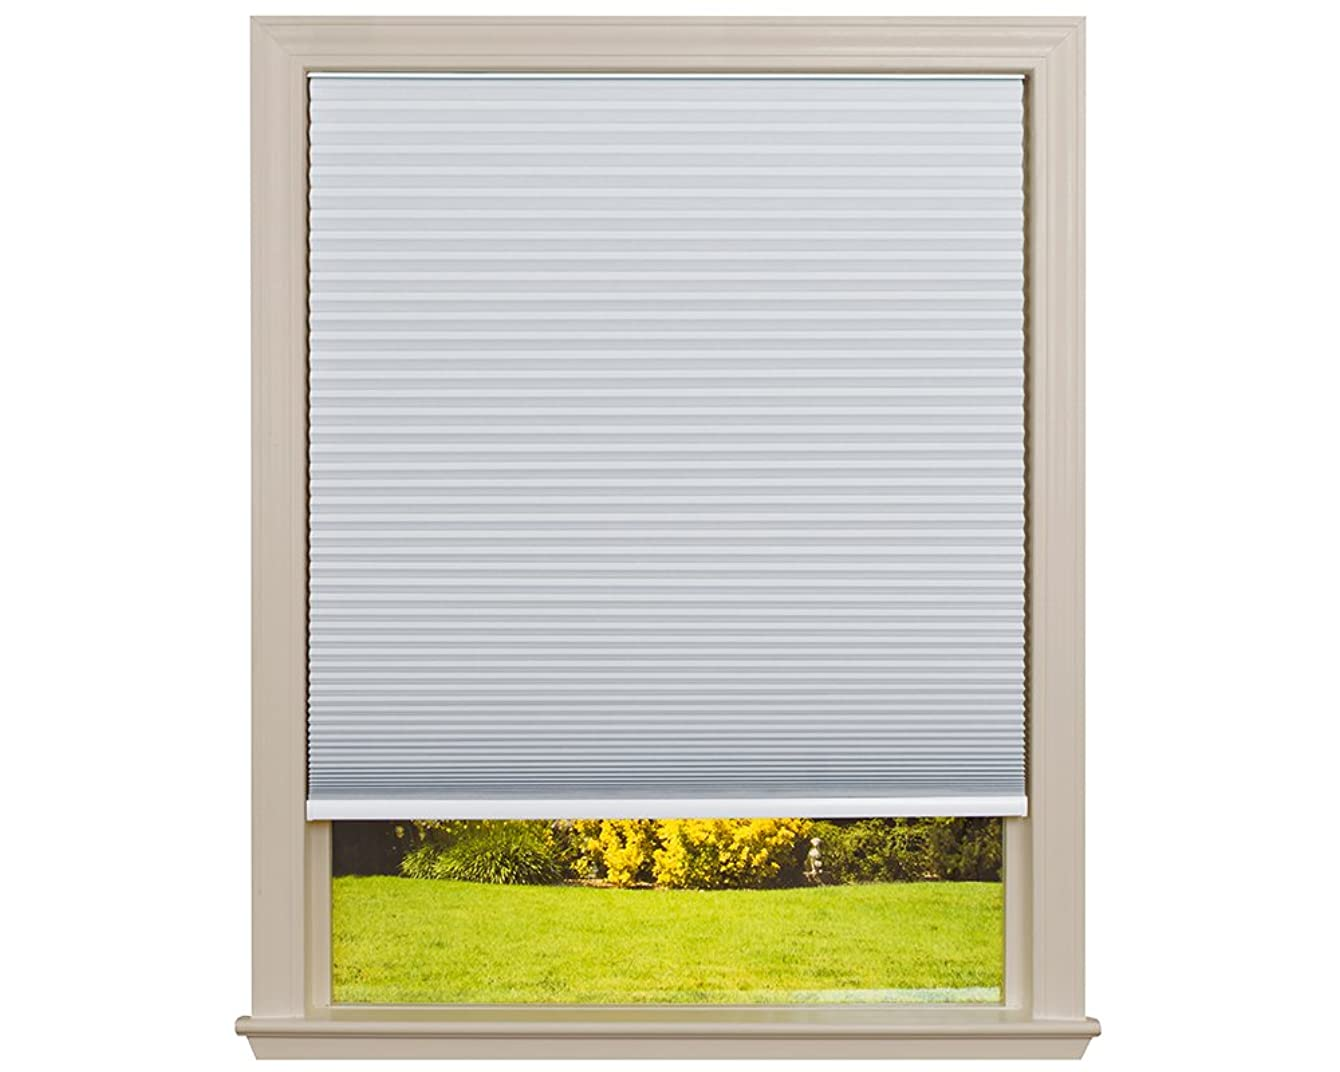 Easy Lift Trim-at-Home Cordless Cellular Blackout Fabric Shade White, 30 in x 64 in, (Fits windows 19